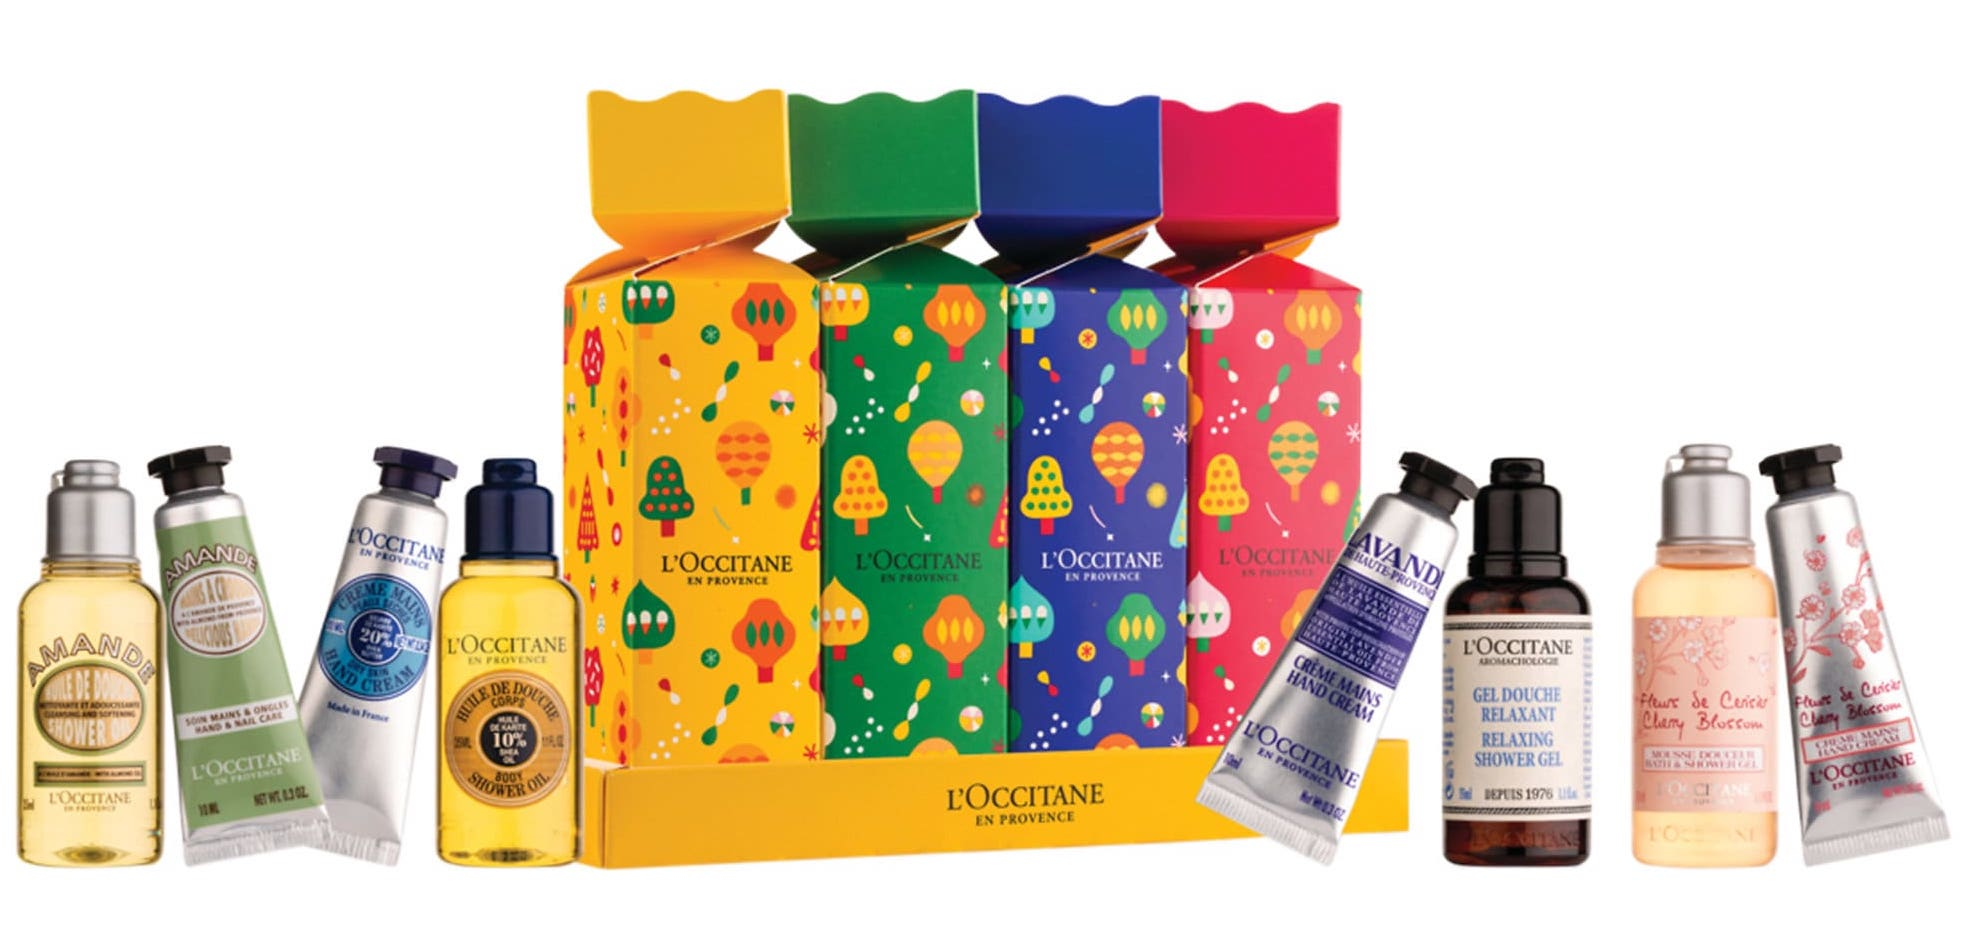 L'Occitane Holiday Kit to Share